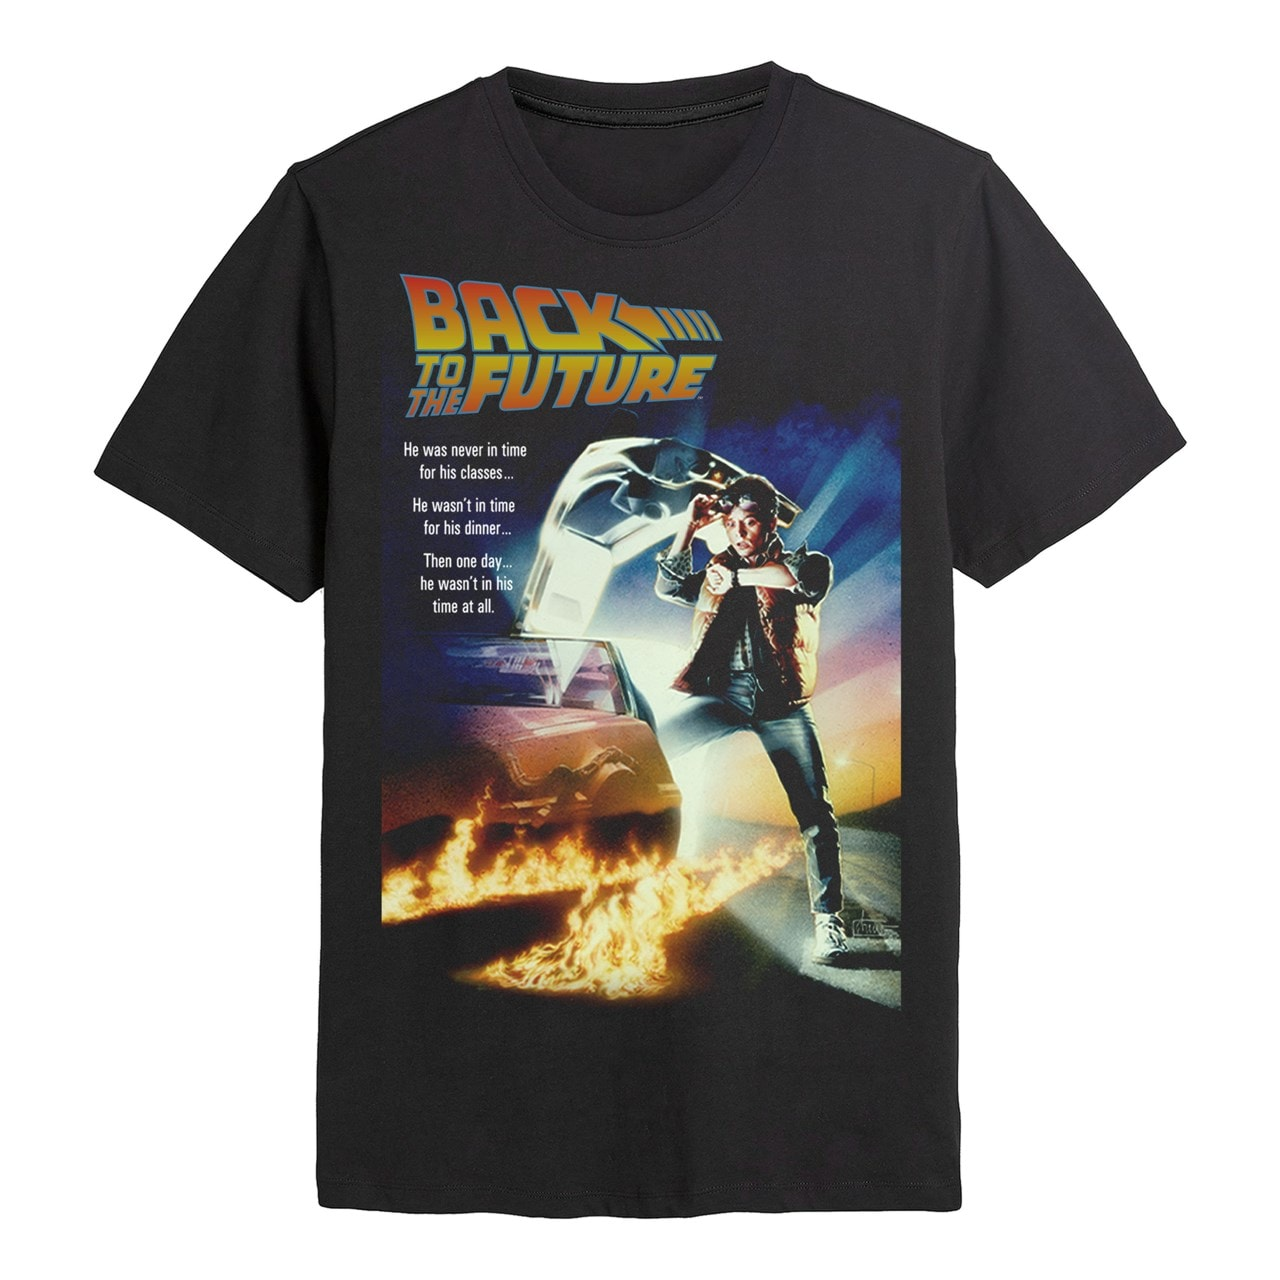 Back To The Future: Classic Poster (Small) - 1